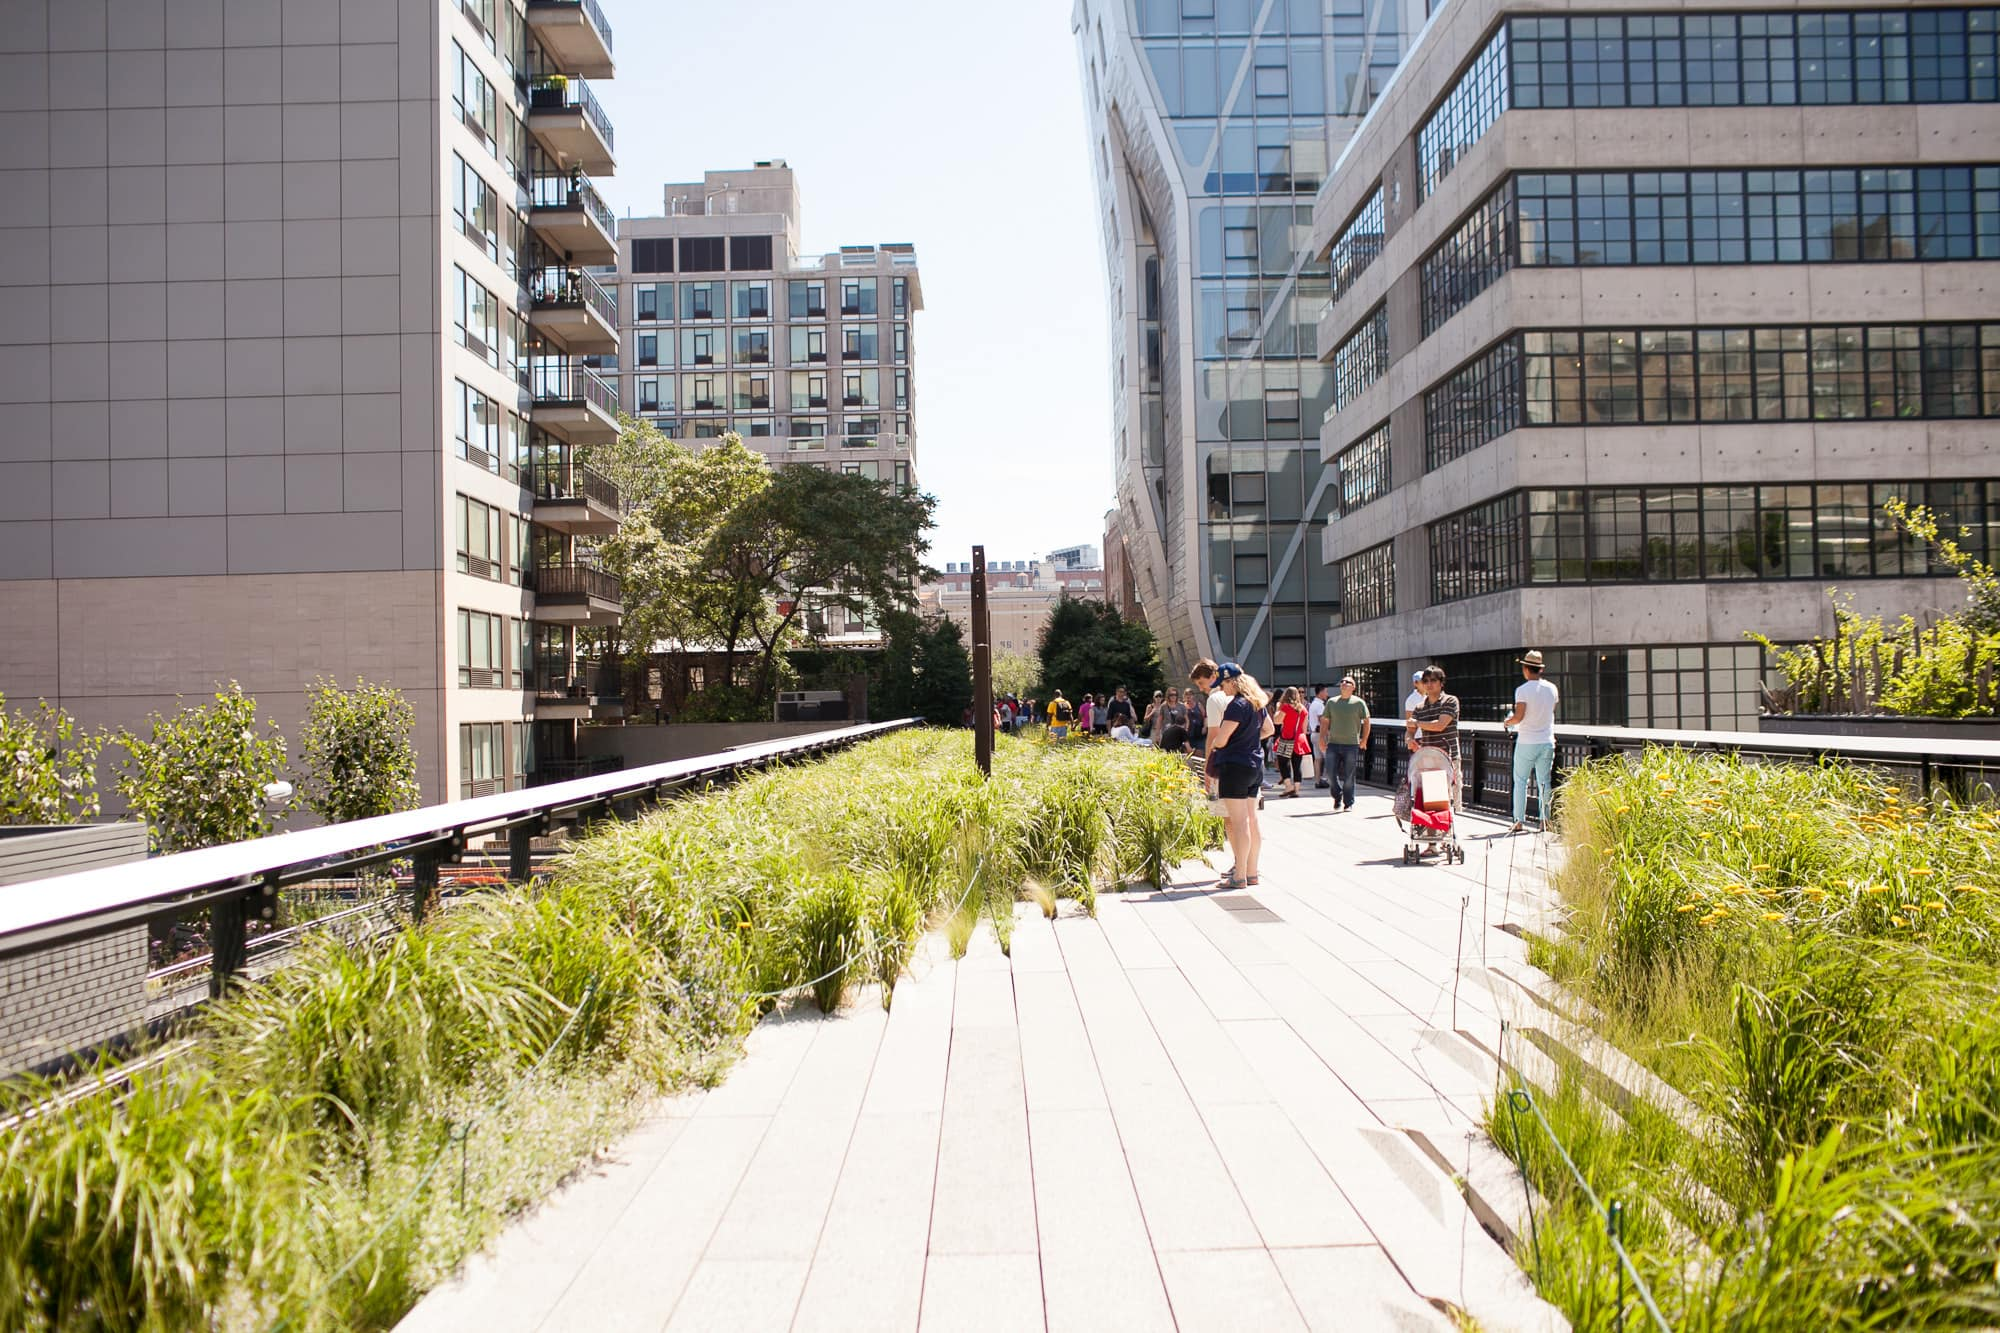 The High Line in New York